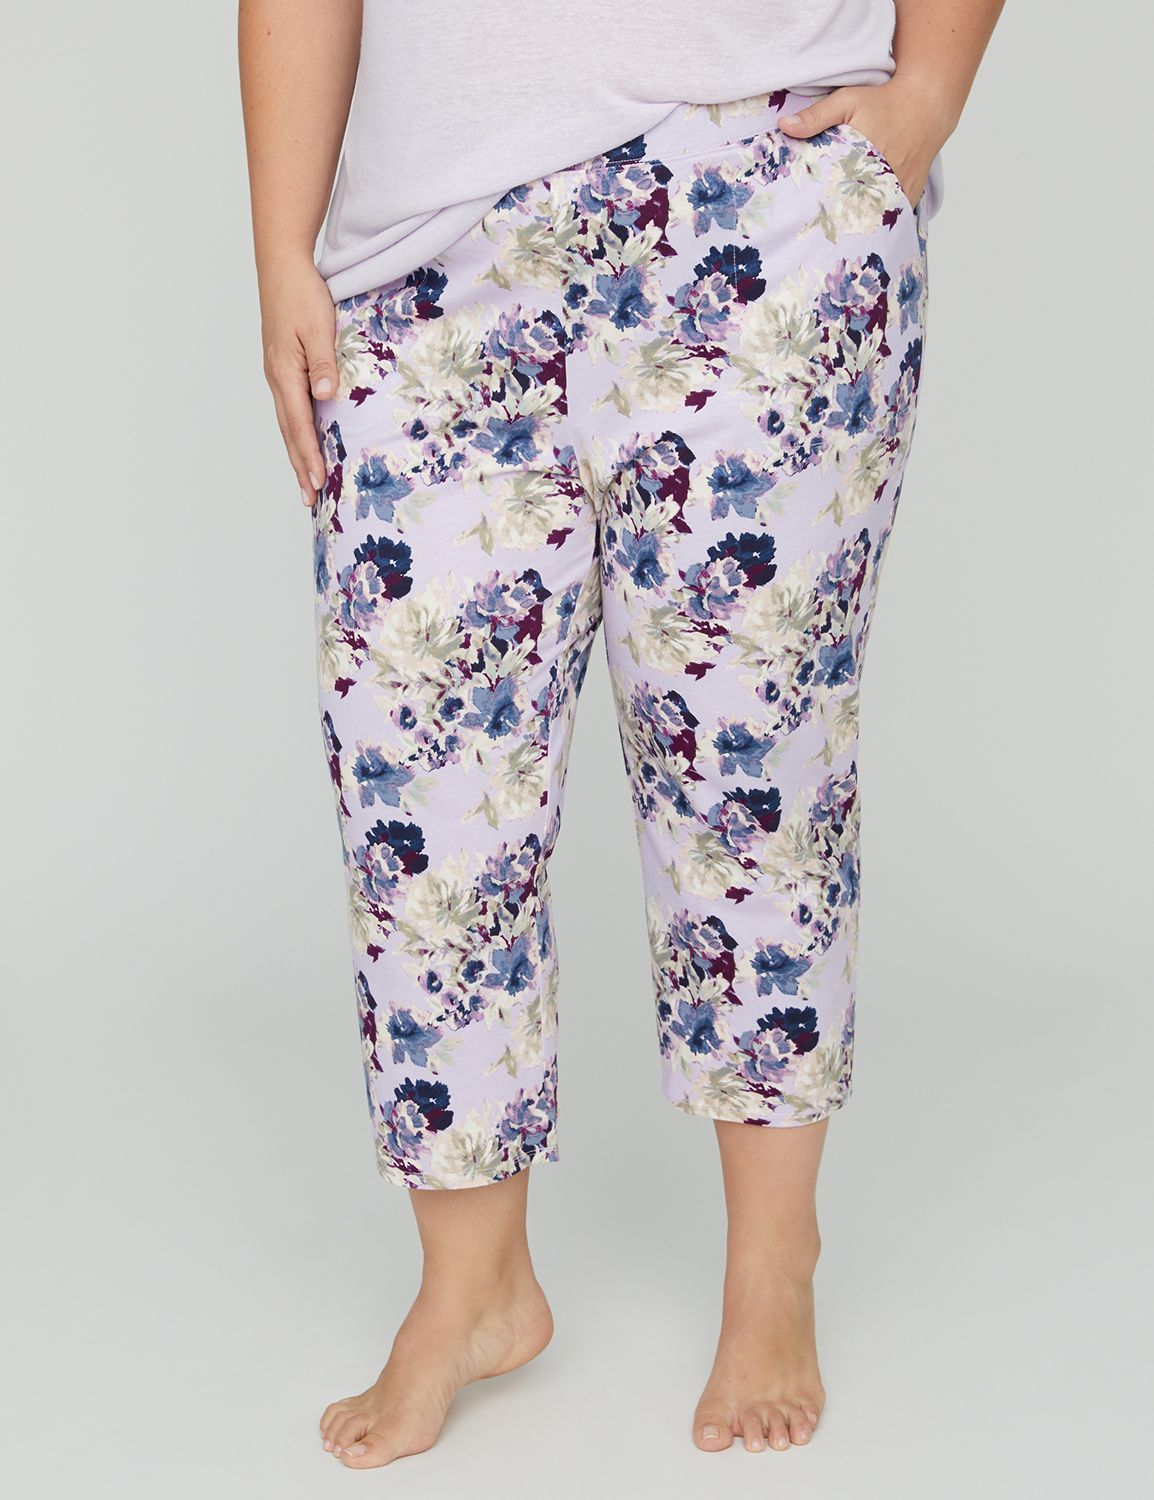 "This super-soft sleep capri brings ultimate relaxation thanks to the peaceful print. Enclosed elastic waist for easy pull-on styling. Pockets. Complete your look with our Orchid Dream Sleep Shirt. Item Number #314965, 100% Cotton, Machine Wash, Imported Plus Size Sleepwear, Inseam: 21"" , Plus Sizes 0X-5X, Catherines Plus Sizes"